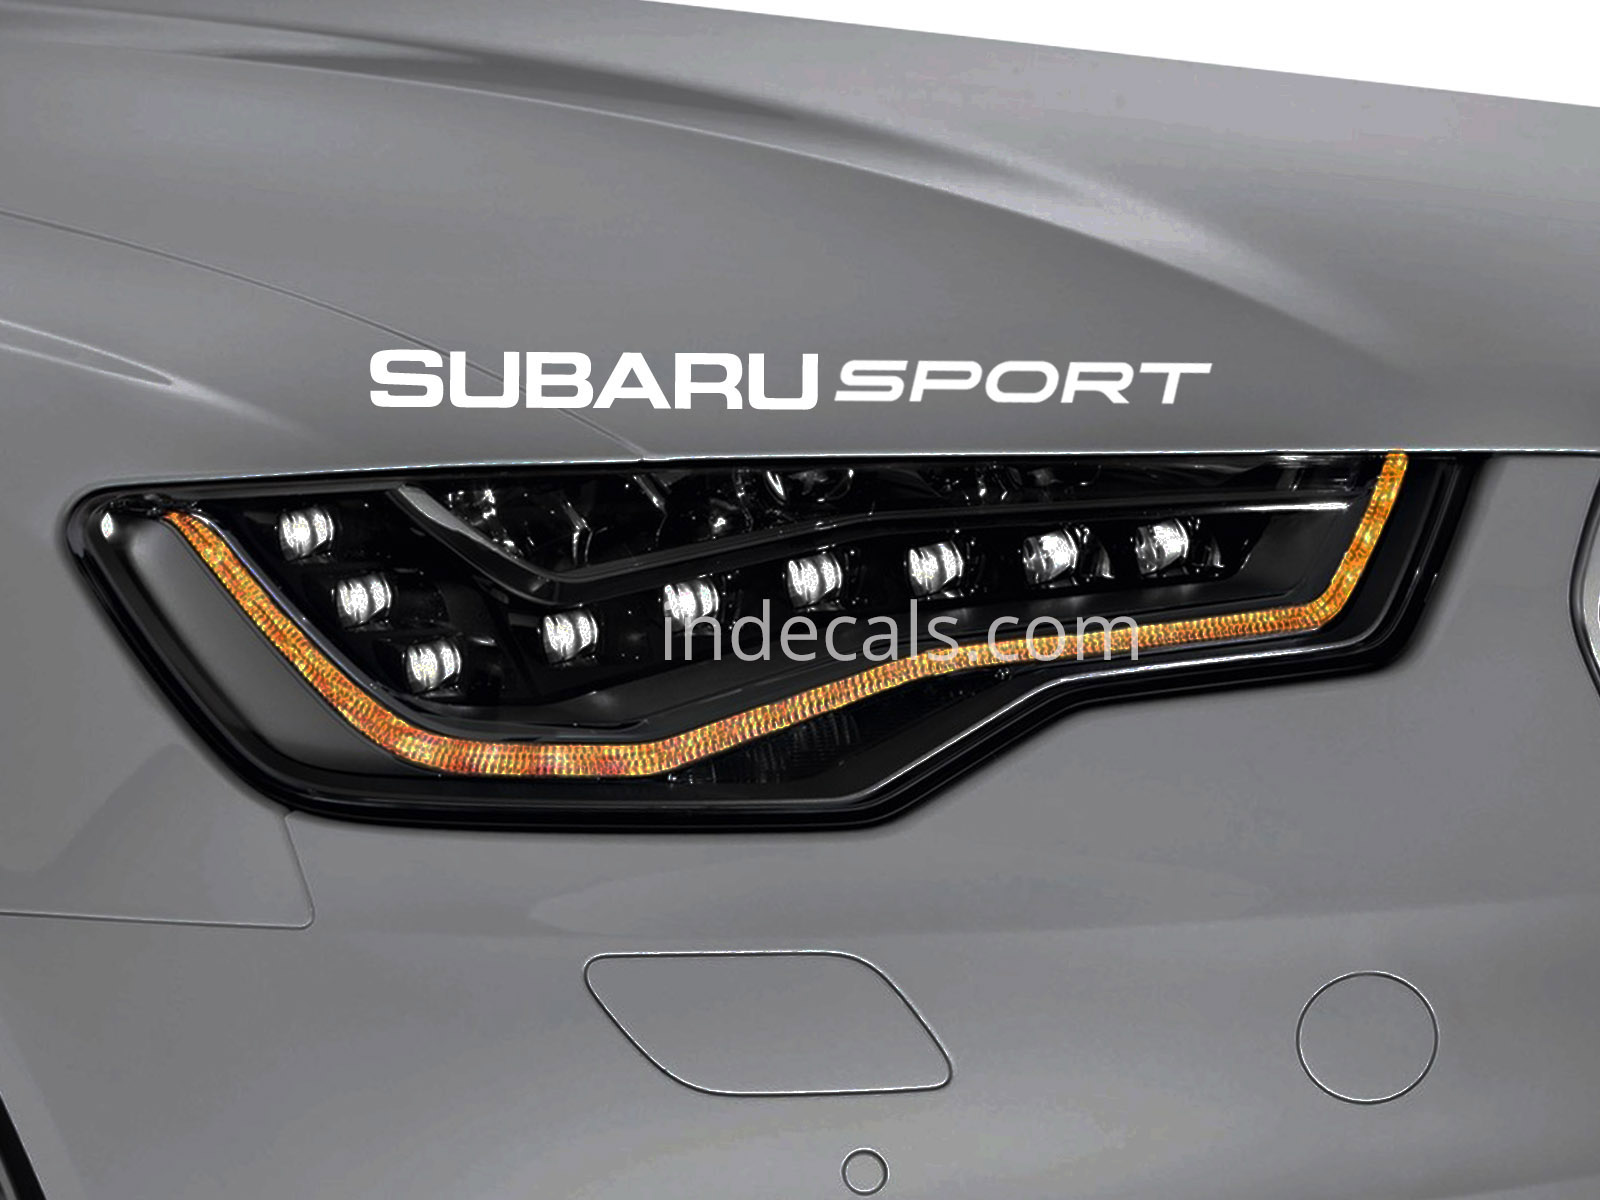 1 x Subaru Sport Sticker for Eyebrow - White